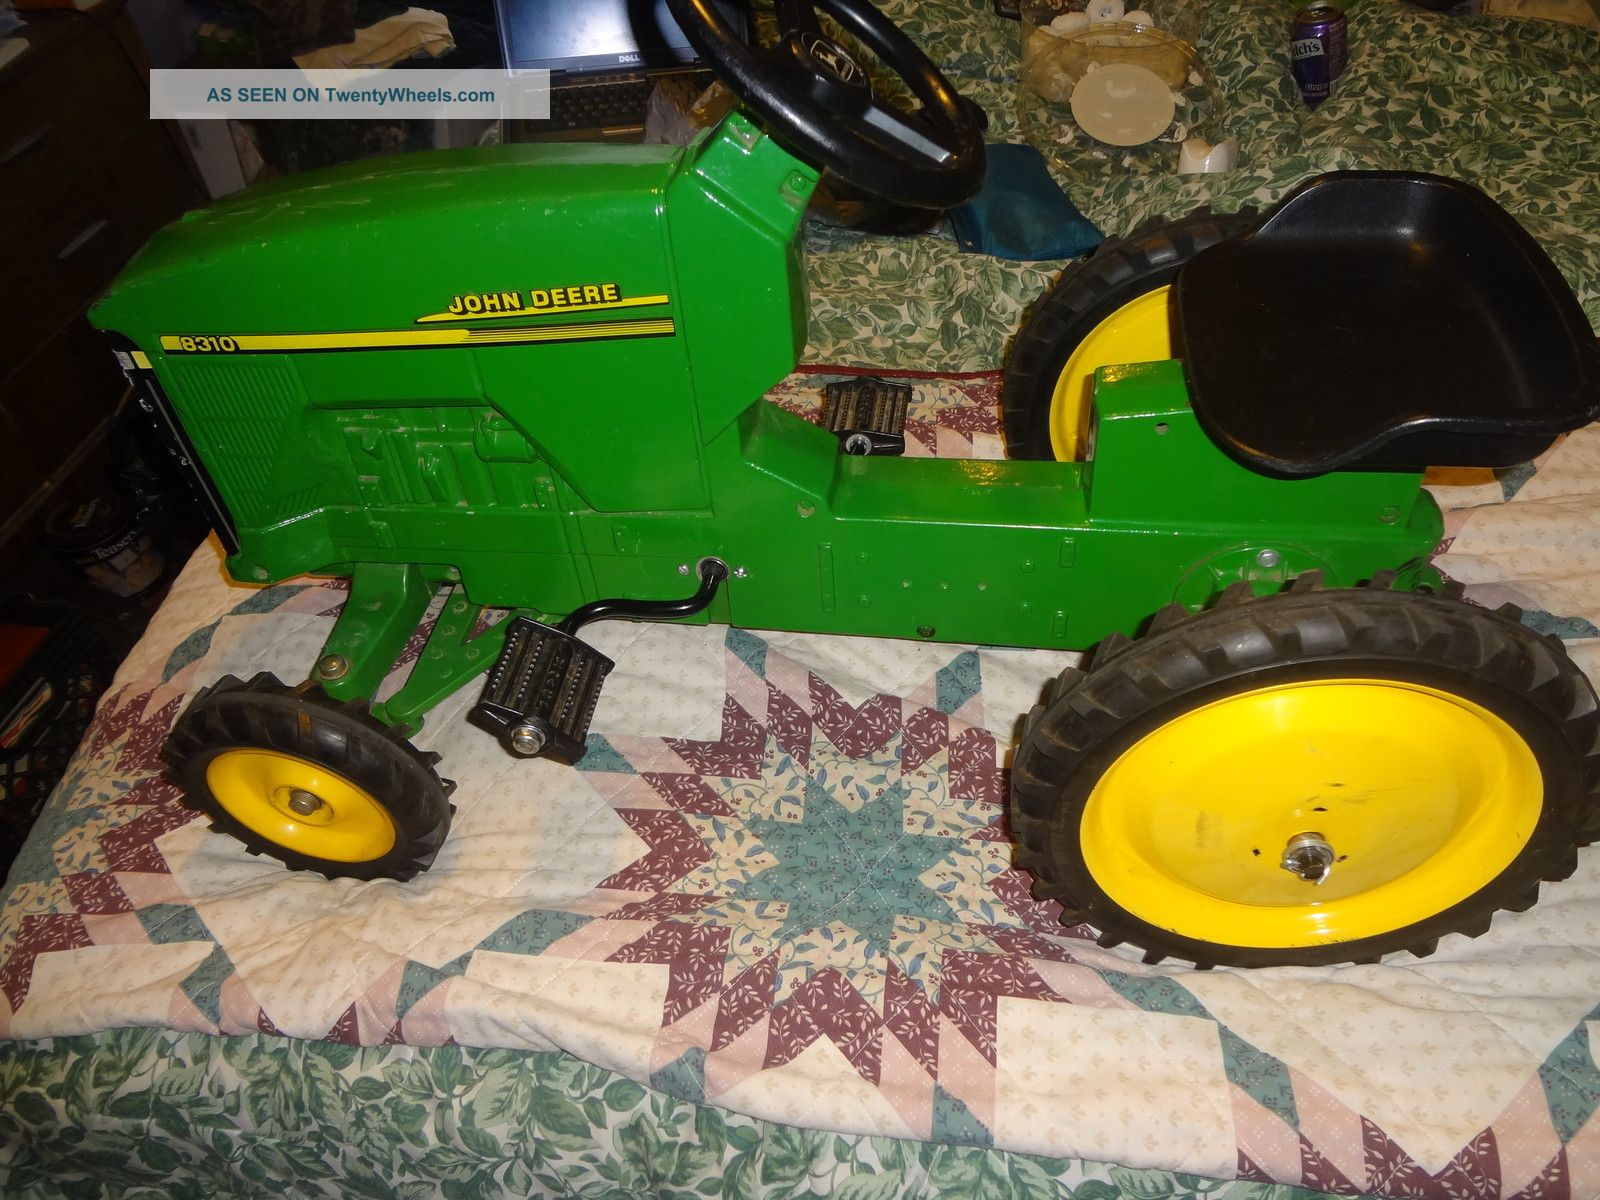 Vintage 8310 Toy John Deere Tractor John Deere photo